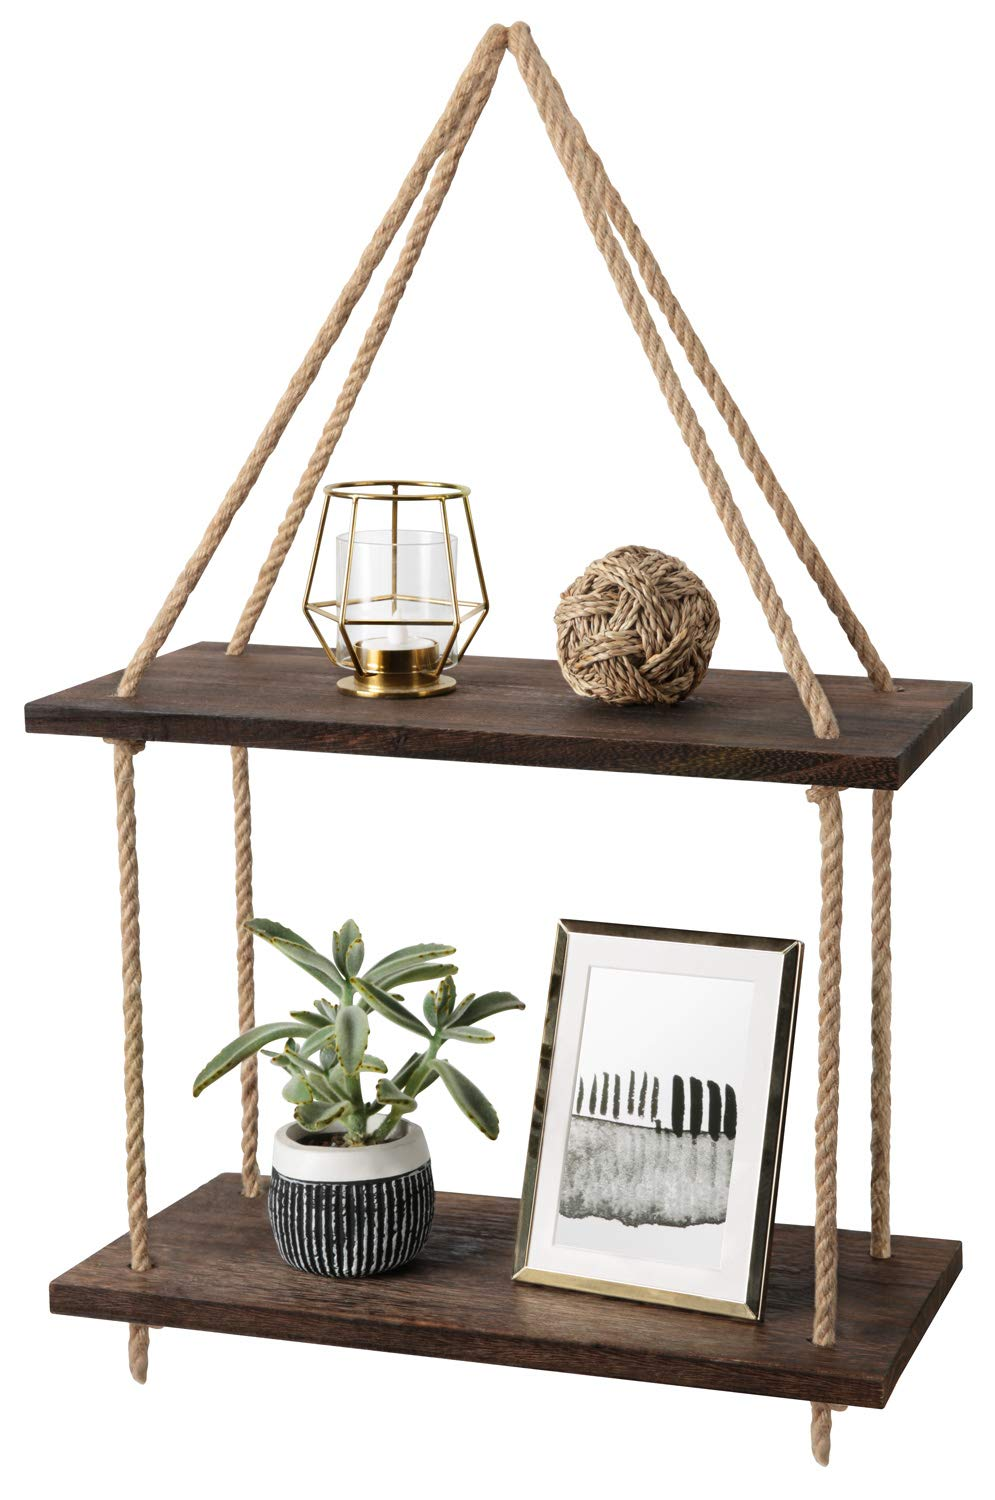 Mkono Wood Hanging Shelf Wall Swing Storage Shelves Jute Rope Organizer Rack, 2 Tier